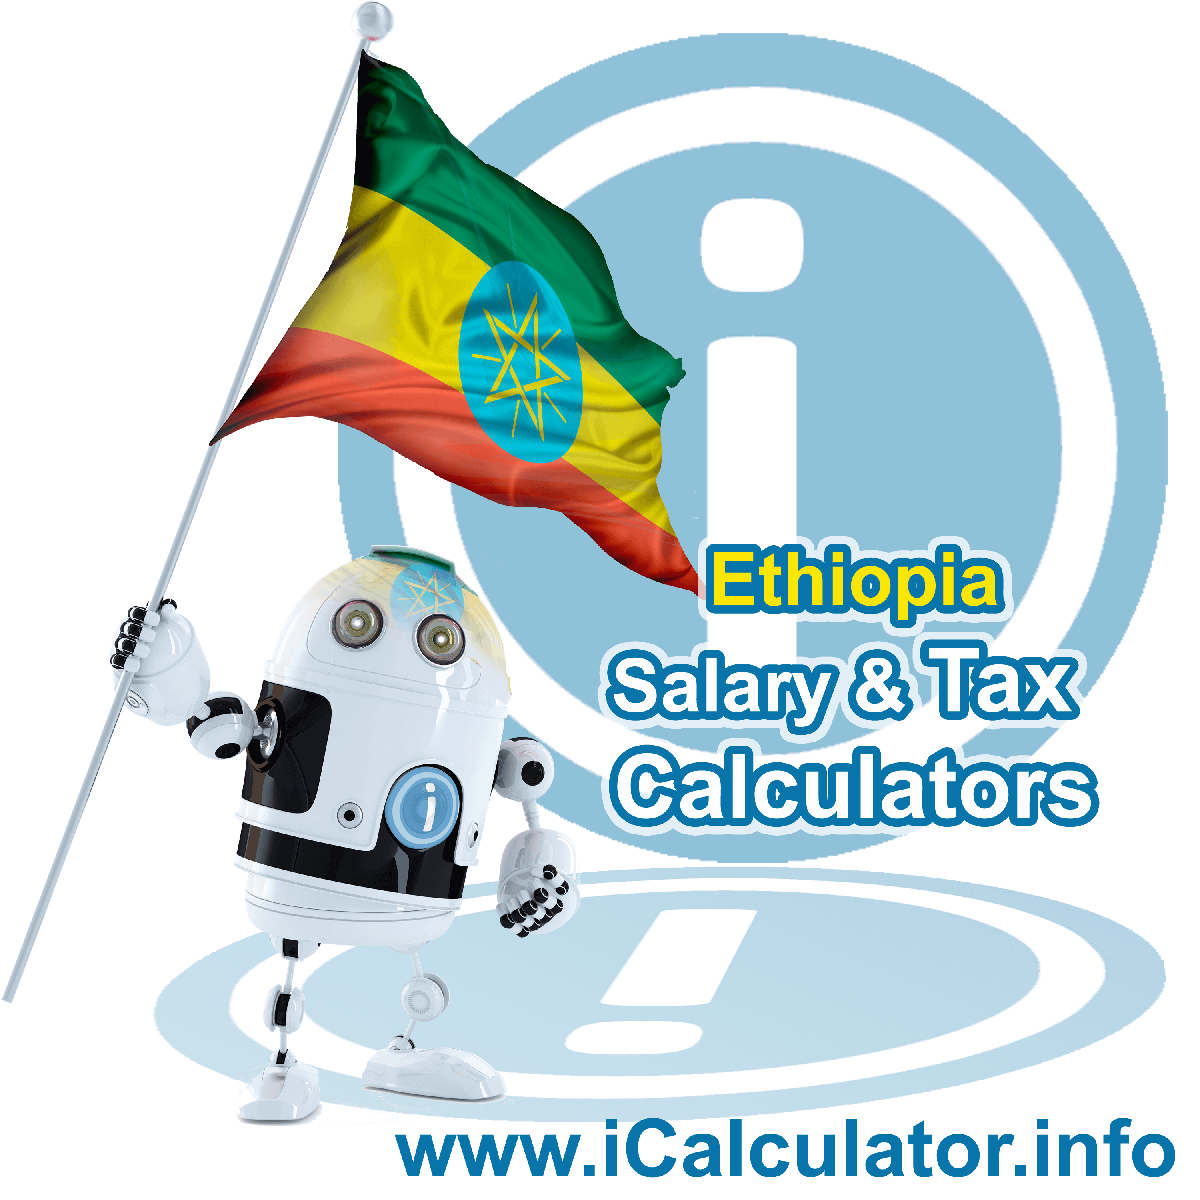 Ethiopia Tax Calculator. This image shows the Ethiopia flag and information relating to the tax formula for the Ethiopia Salary Calculator